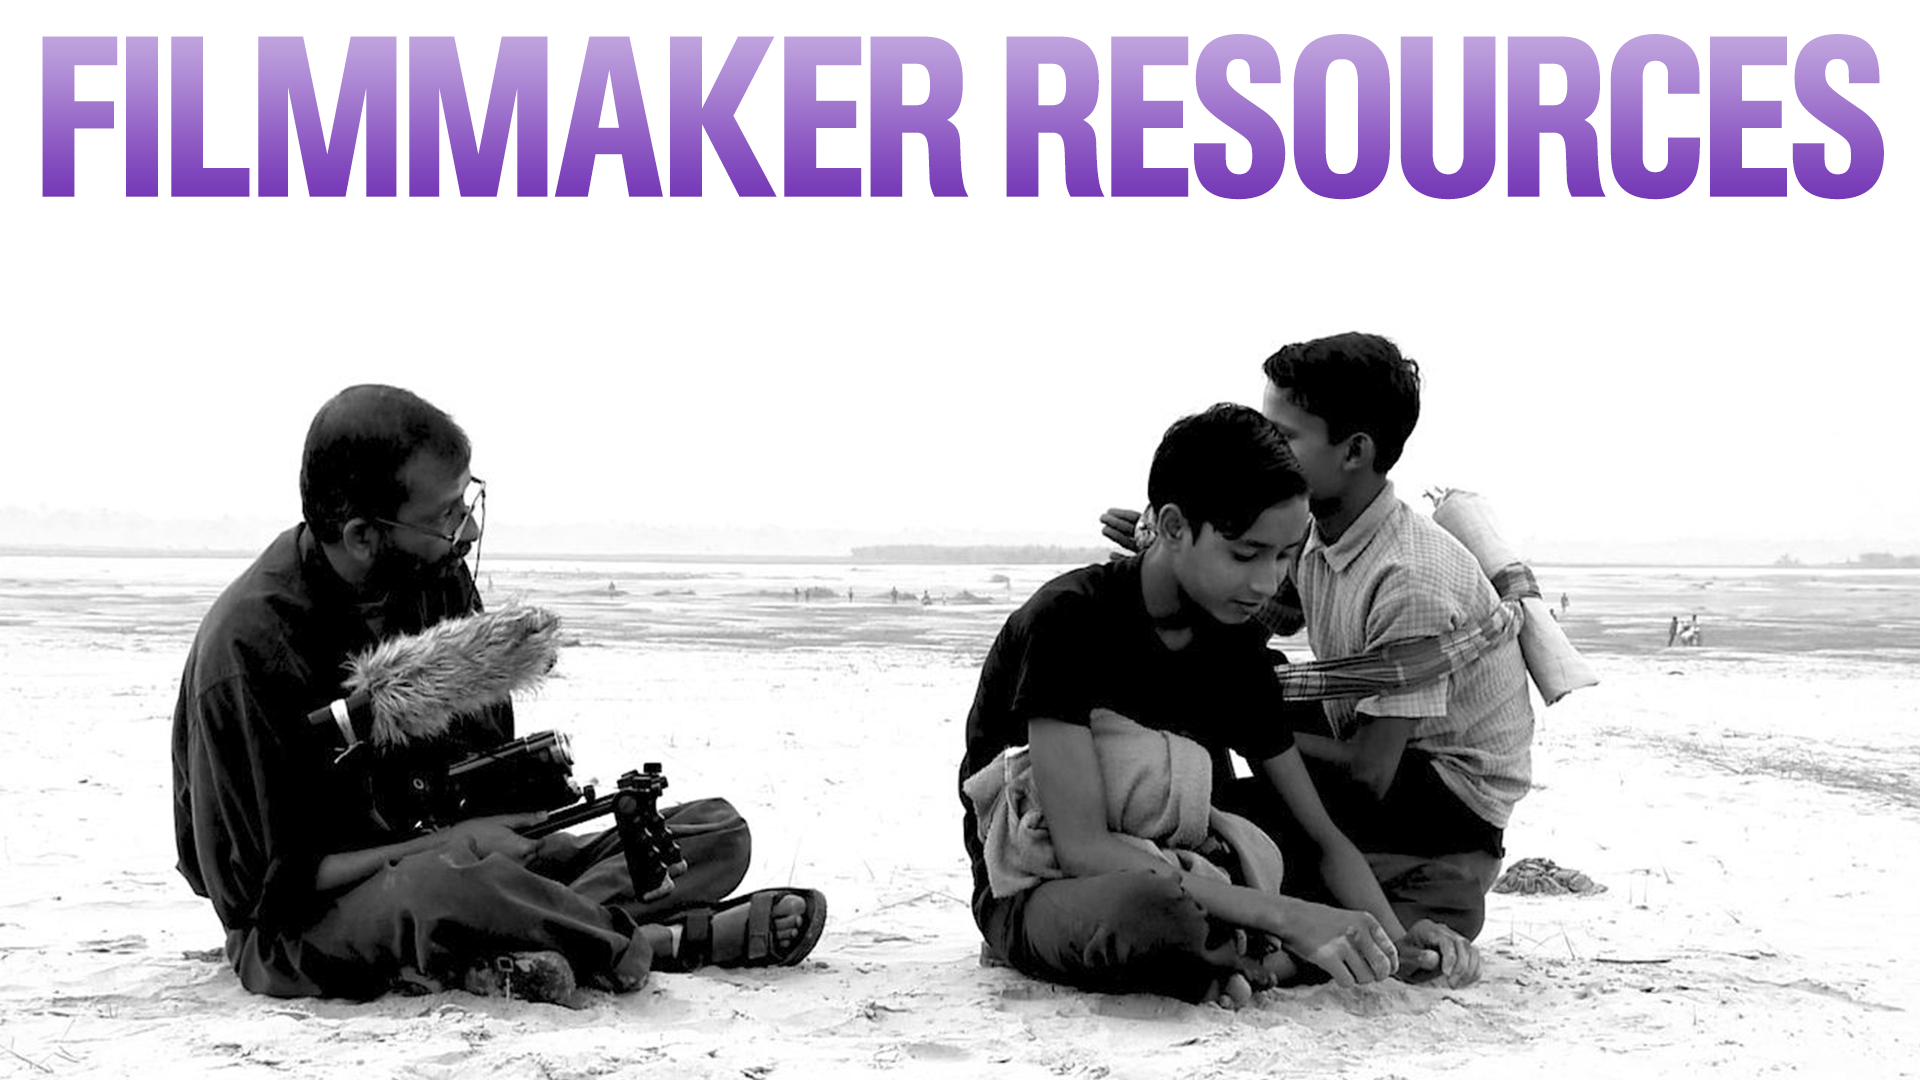 SIMA WEB BANNER - FILMMAKER RESOURCES